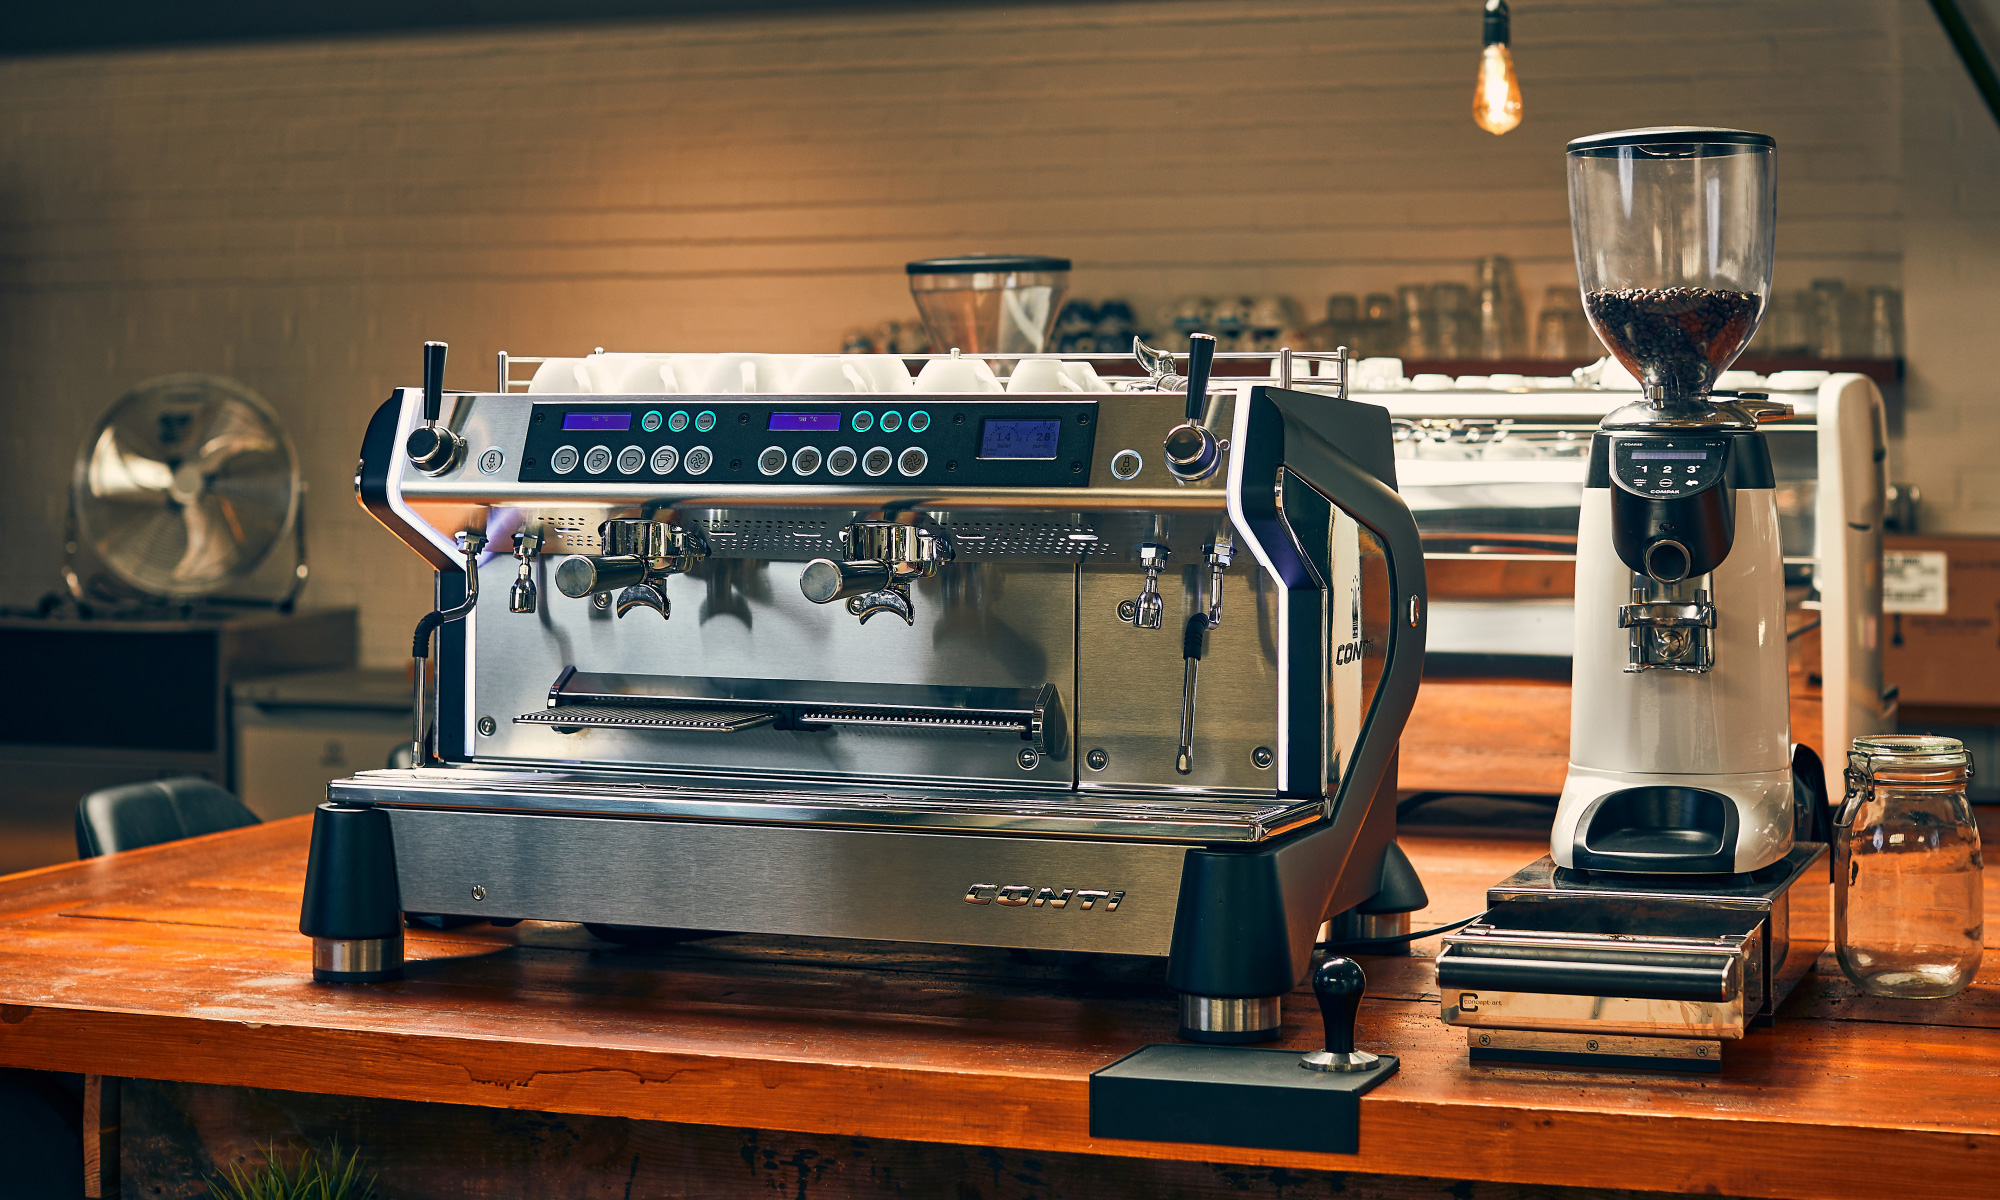 Top 5 Coffee Machines For A Coffee Shop From Caffeine Limited Caffeine Limited